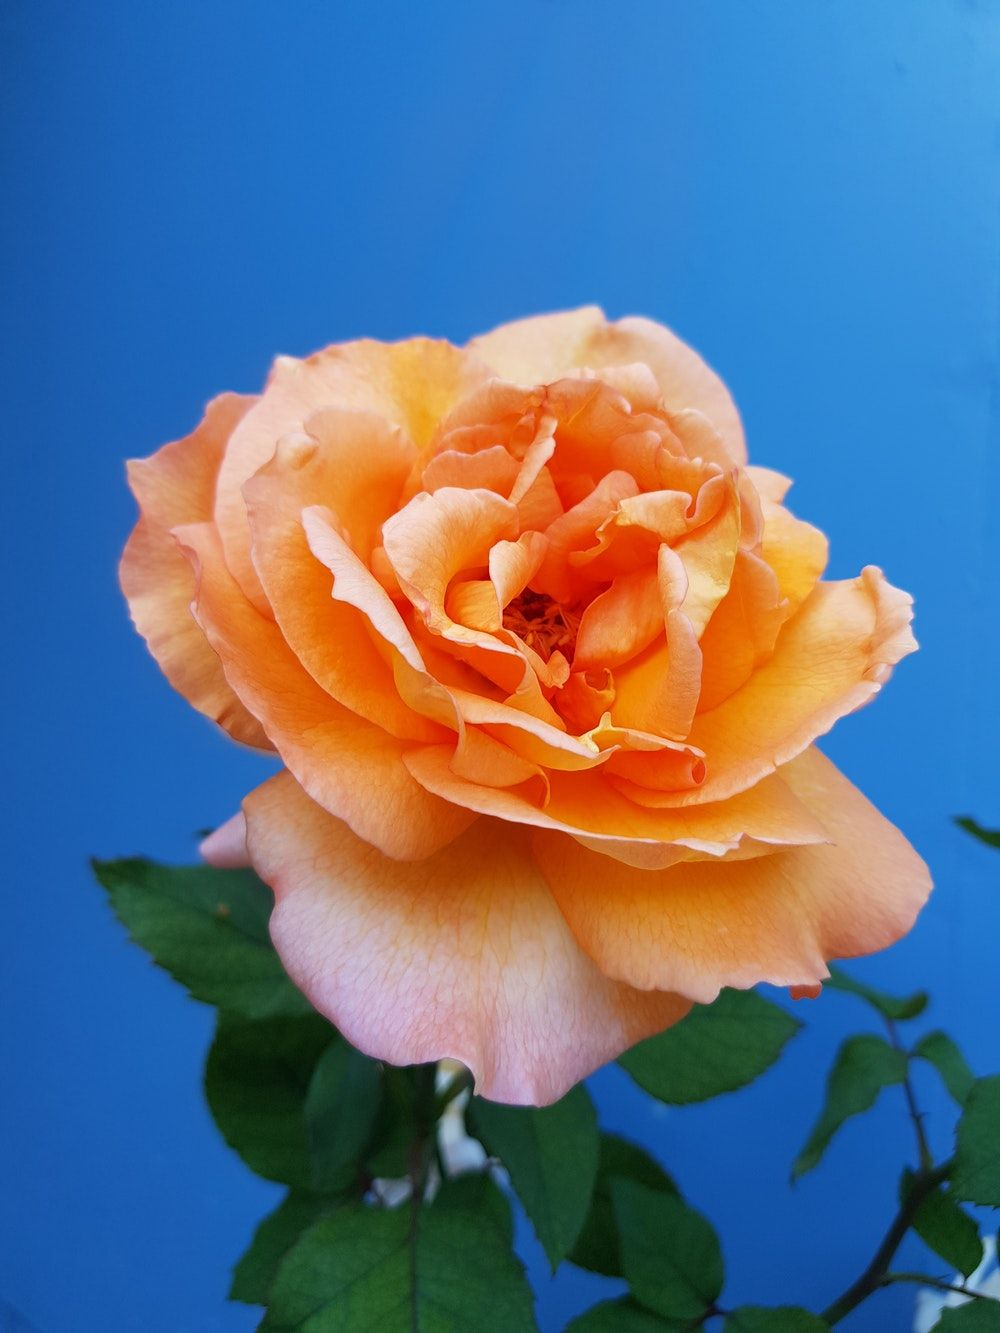 1000x1333 500+ Orange Rose Pictures | Download Free Images on Unsplash